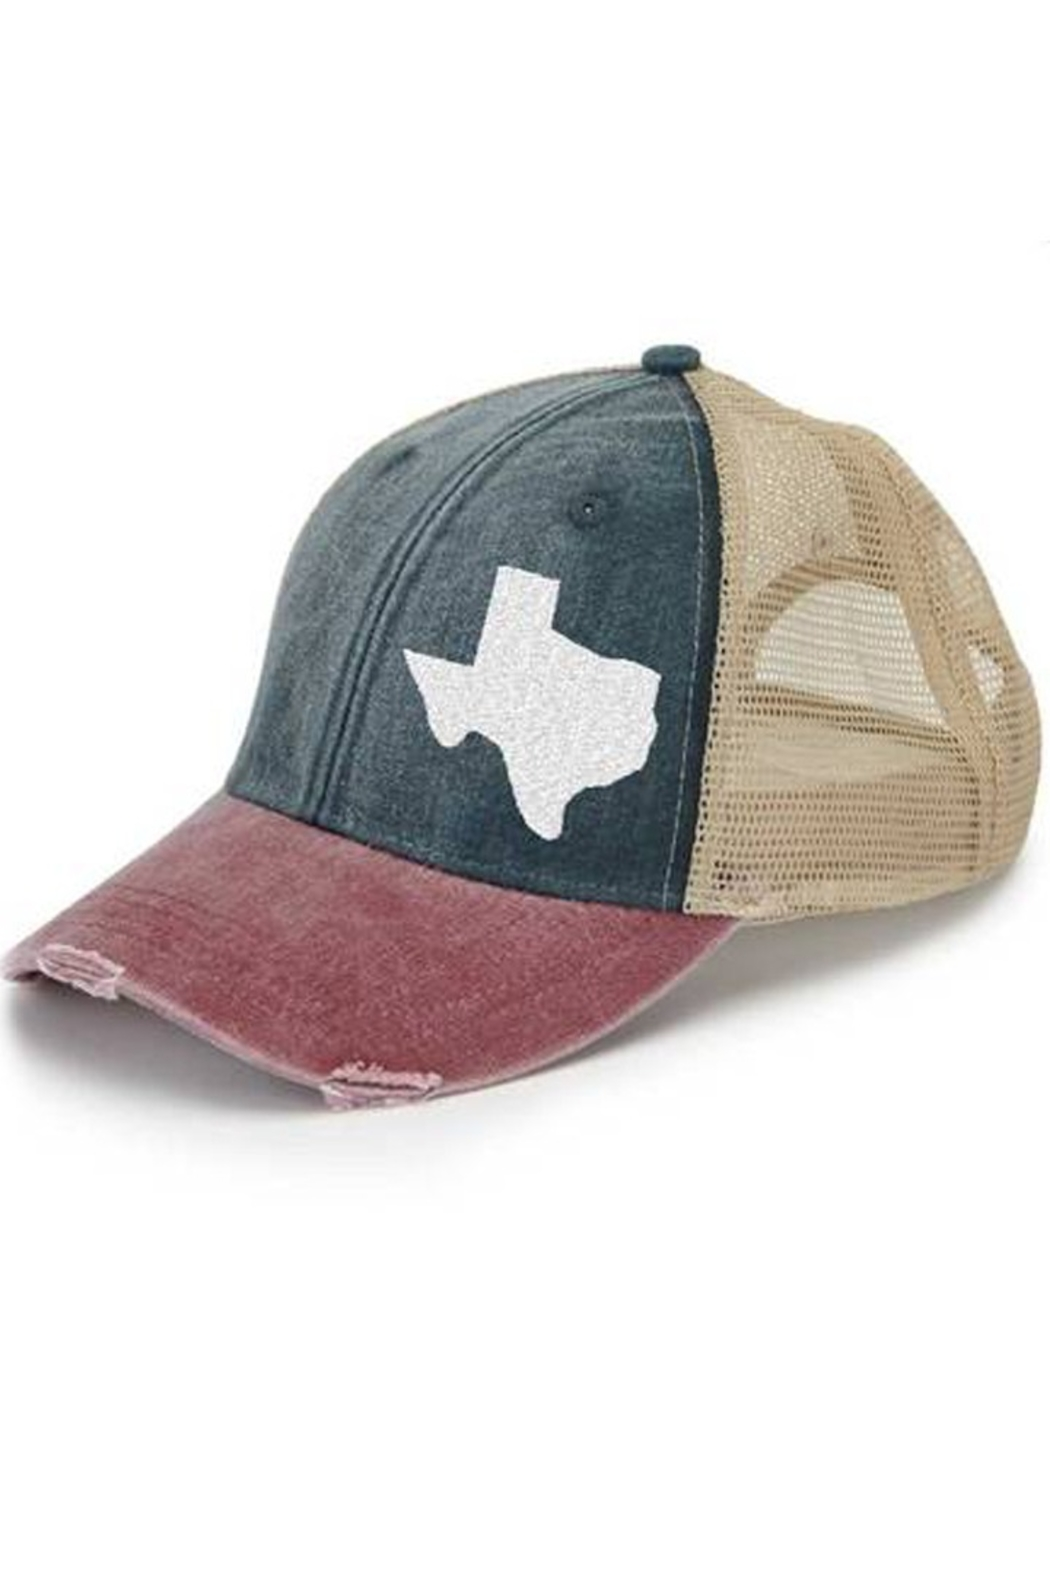 04976c6c36b Gracie Designs Texas State Pride Hat from Texas by y i clothing ...